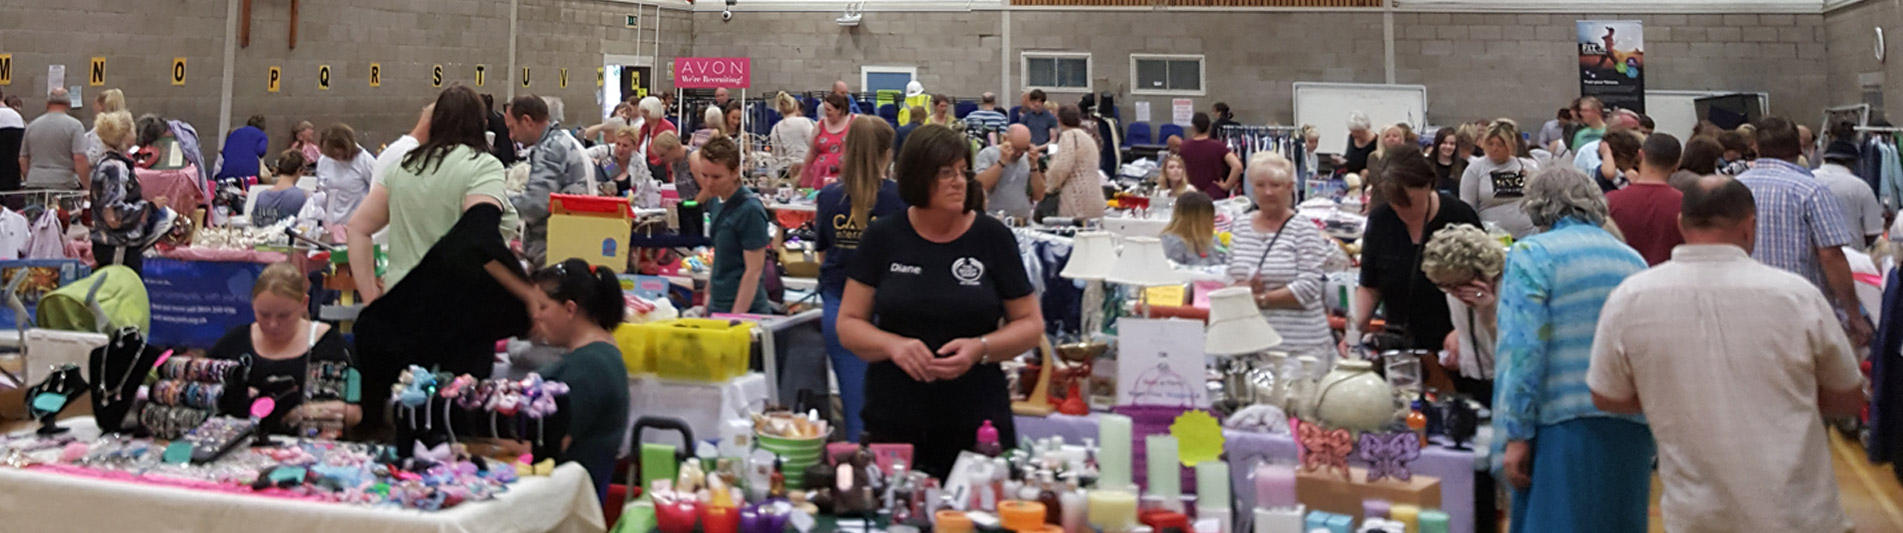 Table Tots Baby Sales and Craft Fairs in Yorkshire